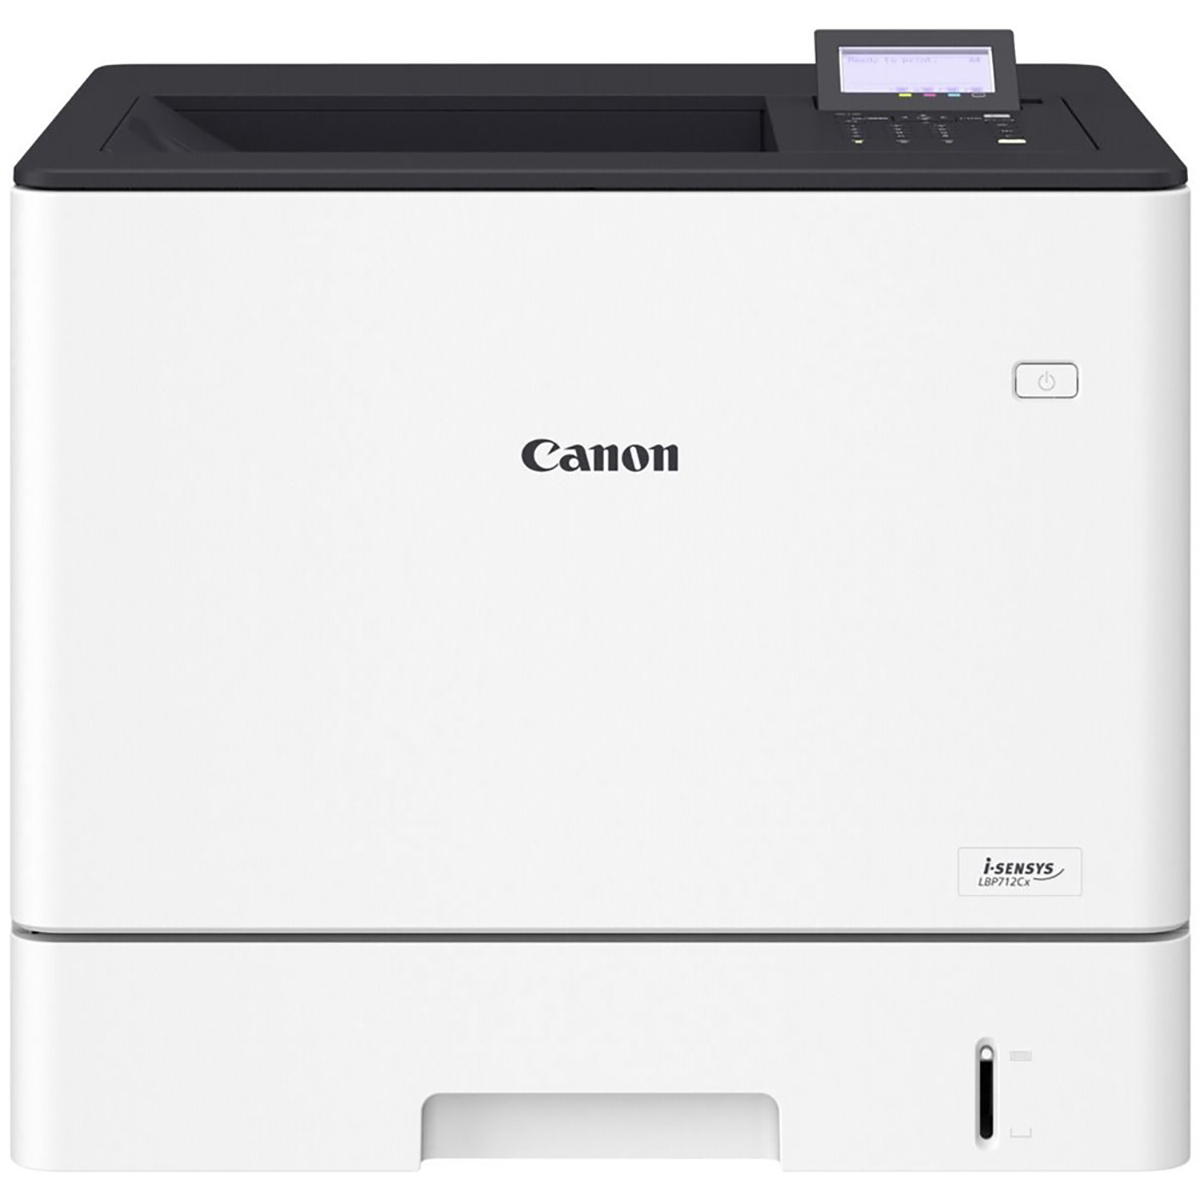 Canon i-SENSYS LBP712Cx Colour Laser Printer